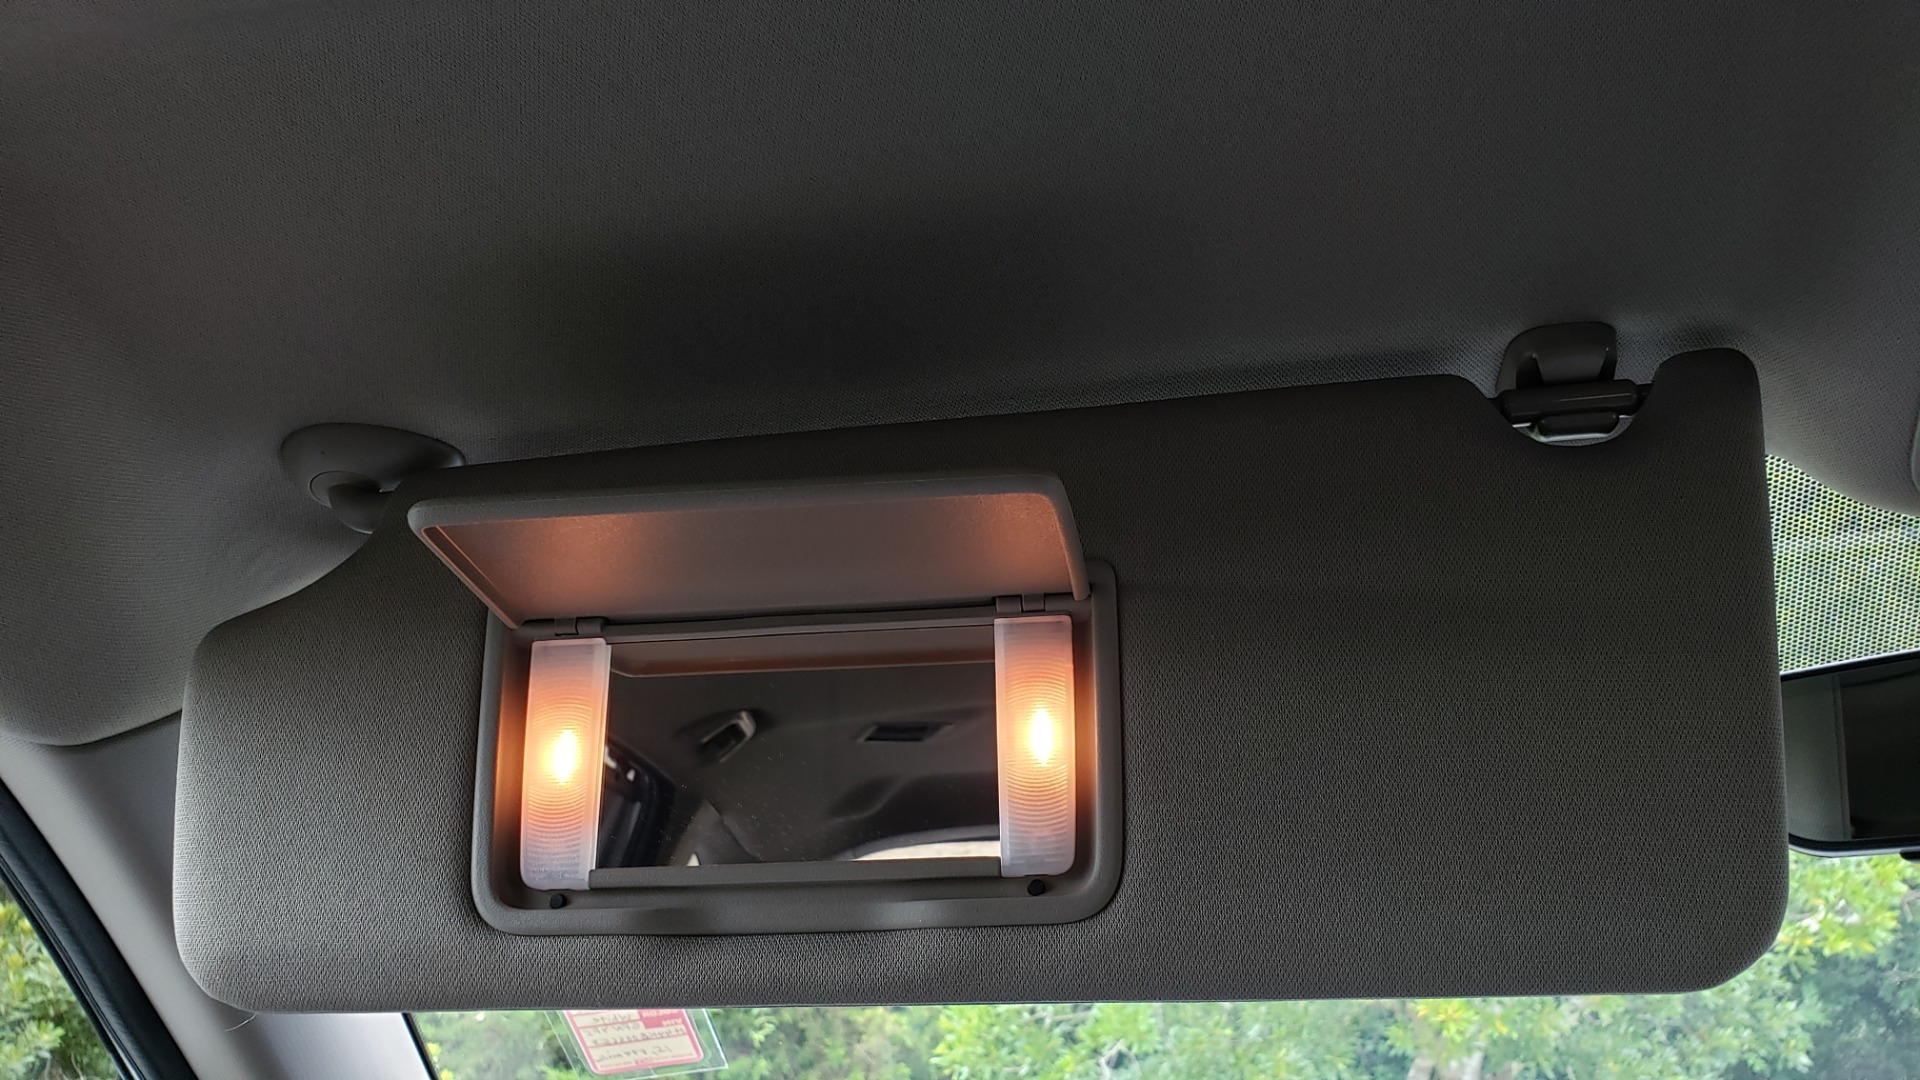 Used 2019 Honda PILOT EX-L / V6 / NAV / SUNROOF / DVD / 3-ROW / REARVIEW for sale Sold at Formula Imports in Charlotte NC 28227 55